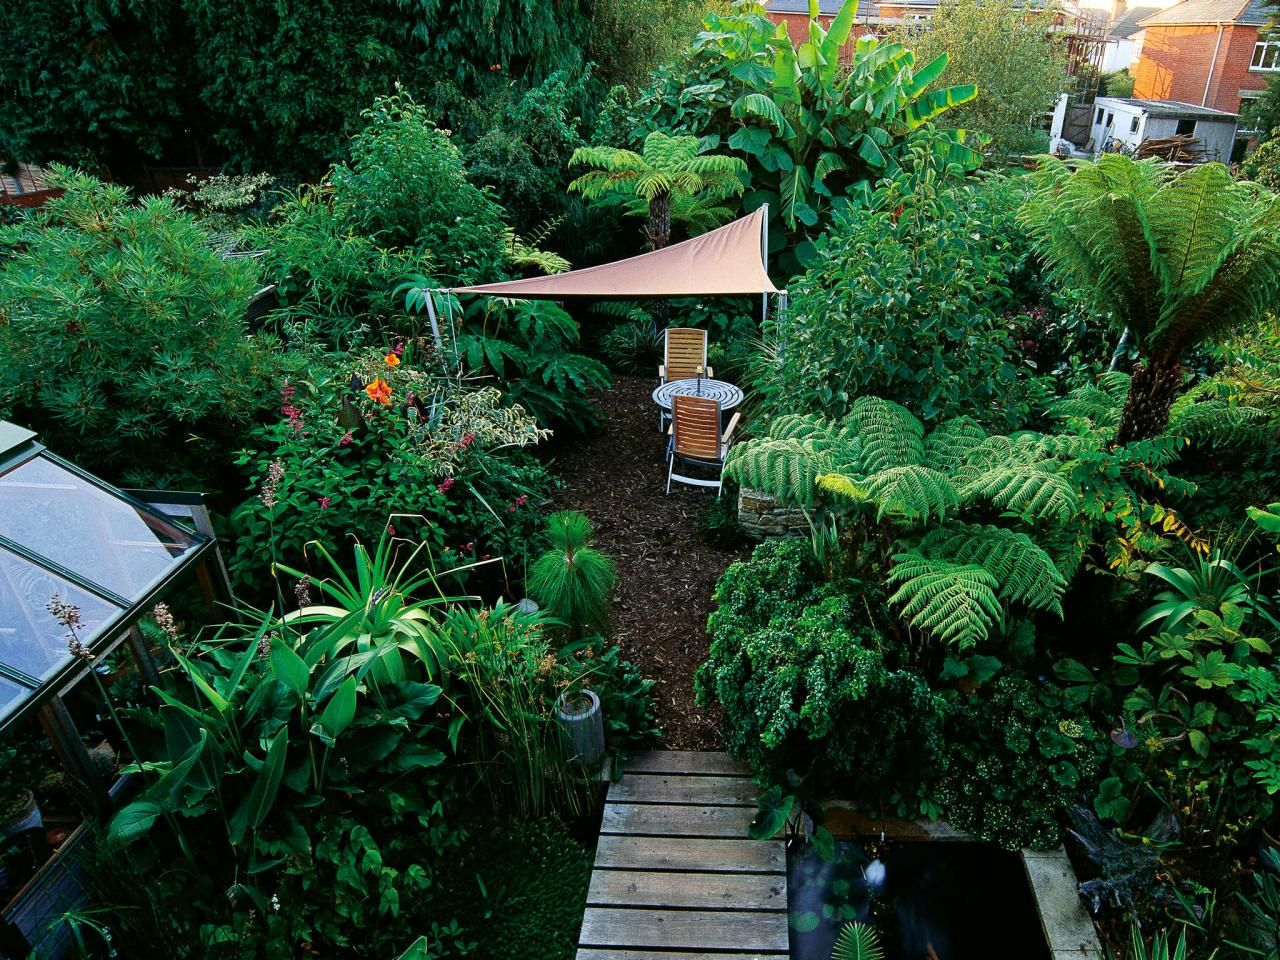 discover ideas for shade garden design from the experts at hgtv learn practical tips for